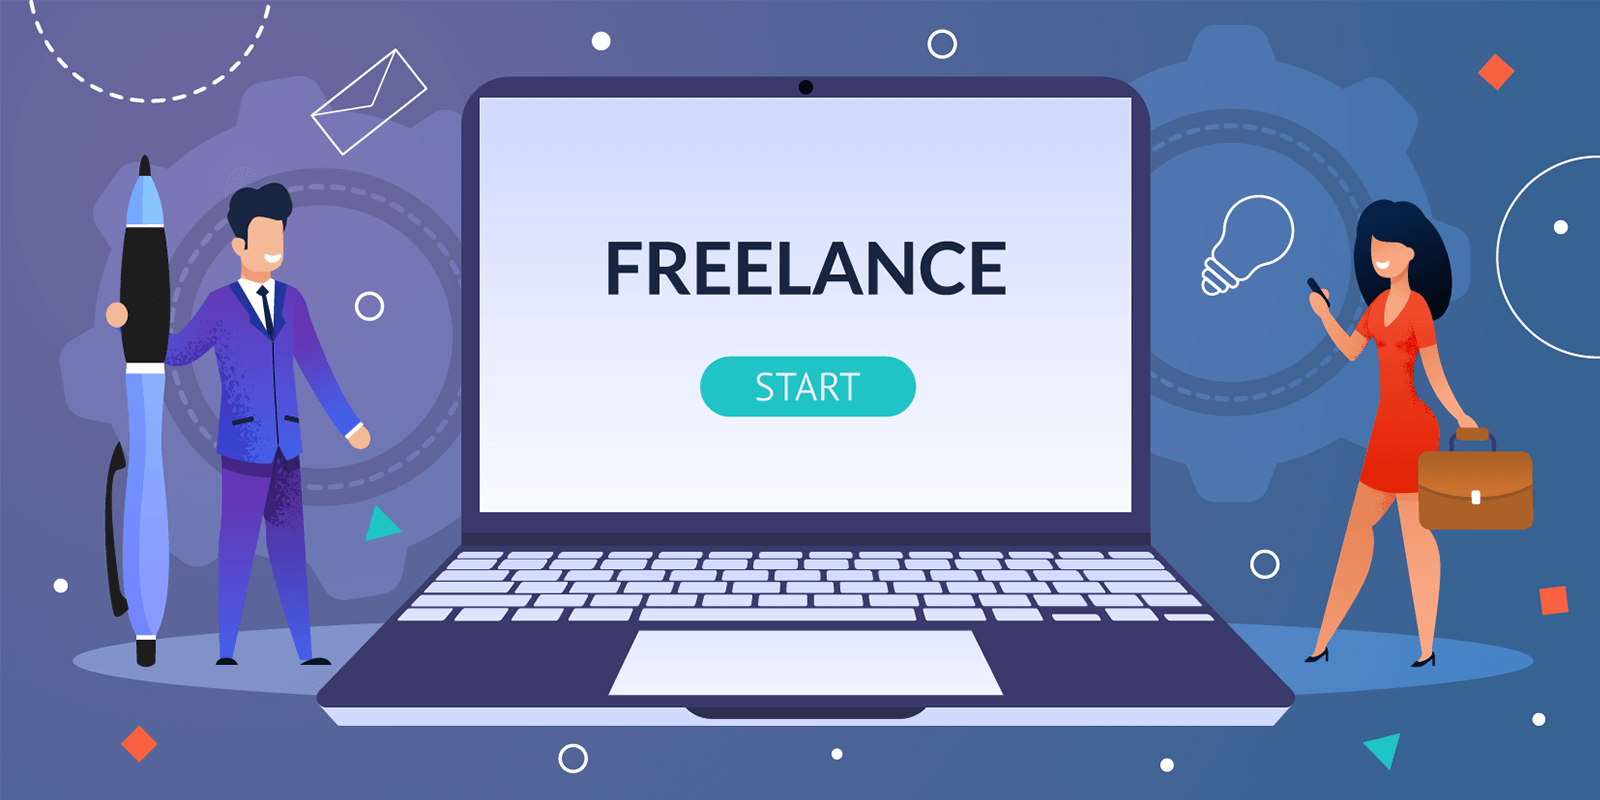 7 Ways to Create Your Own Freelance Opportunities